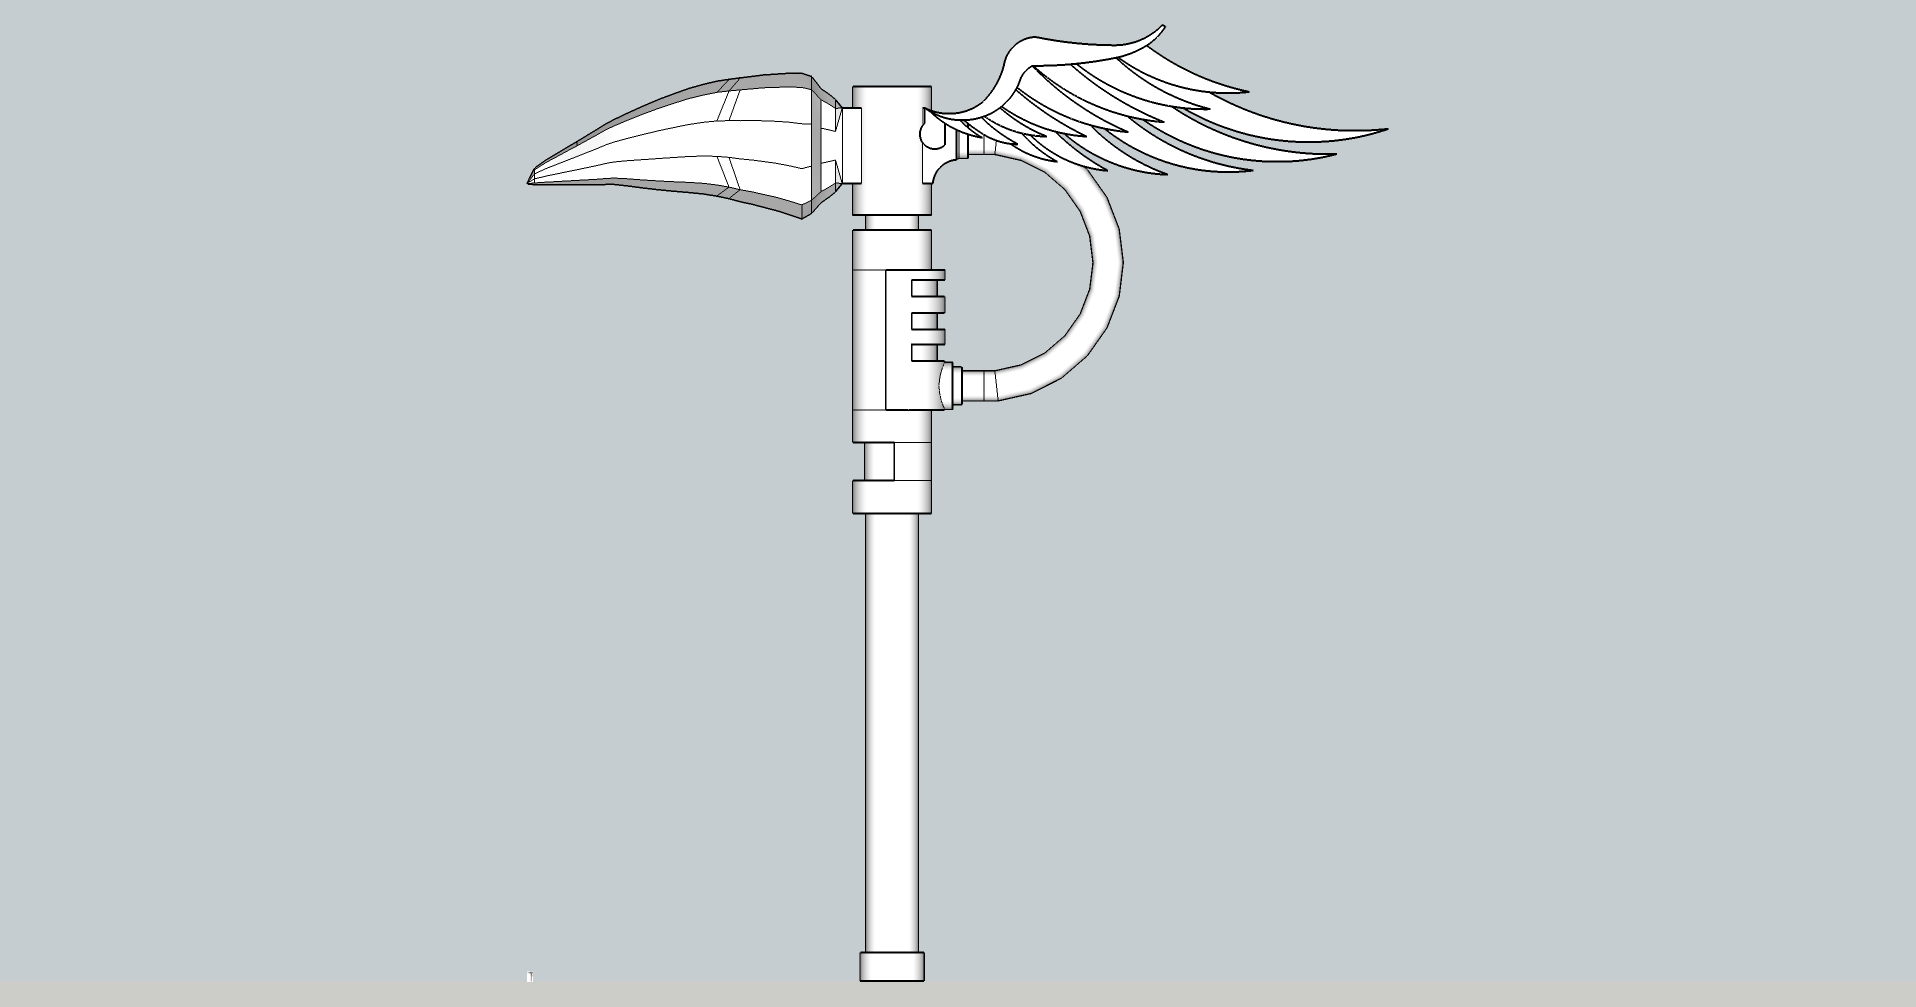 corvus_hammer_6_by_s3dition-d8fa623.png